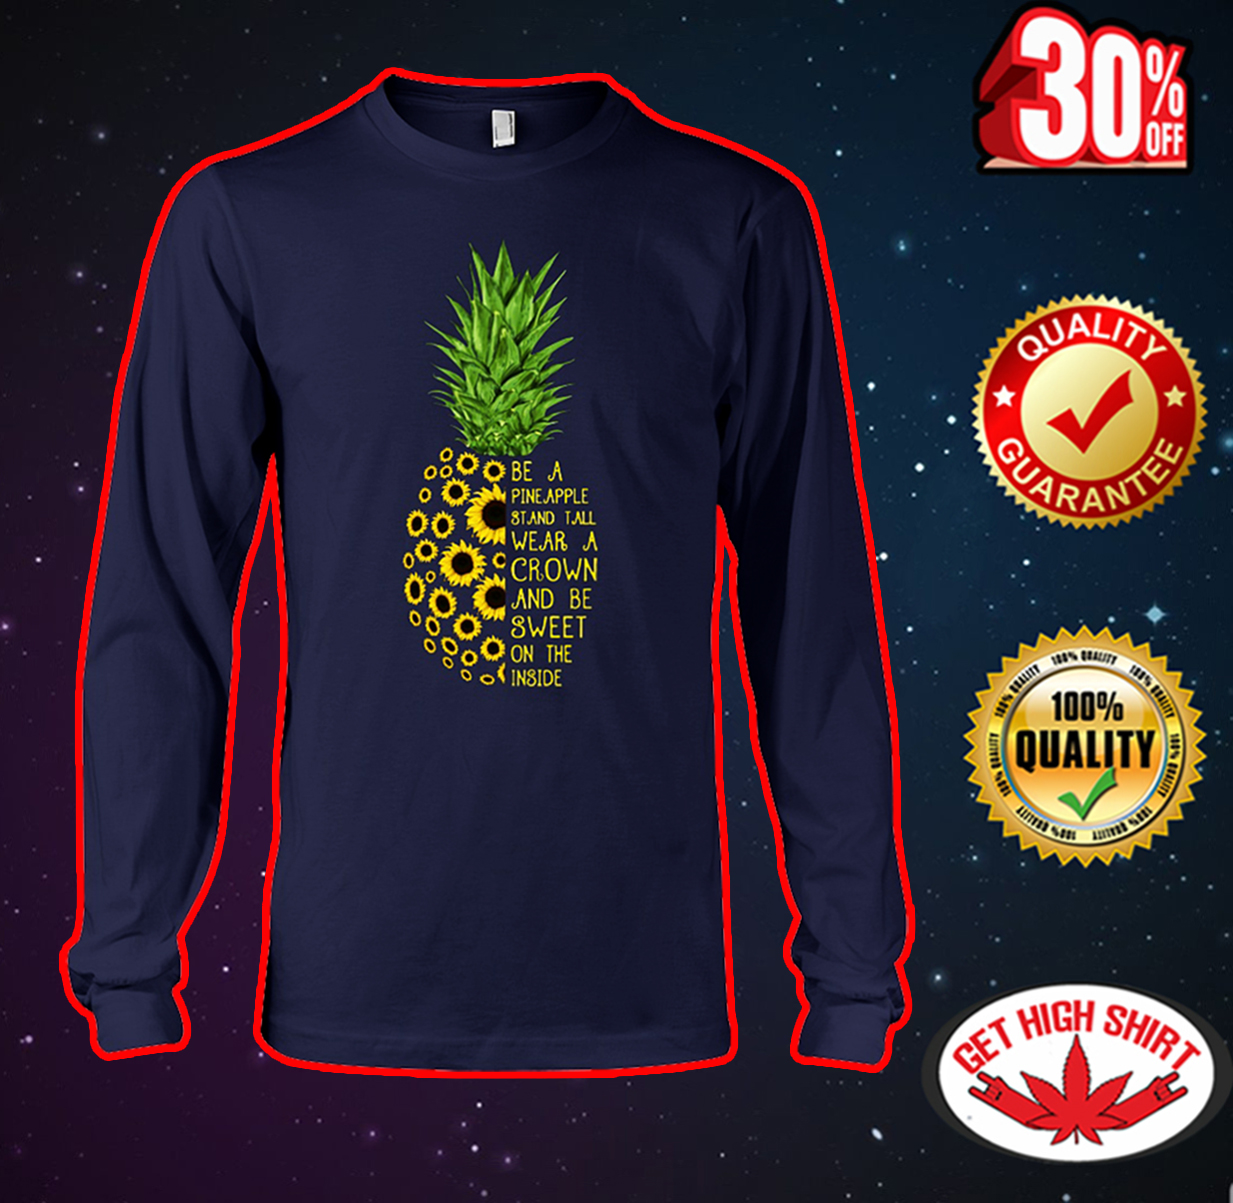 Sunflower be a pineapple stand tall wear a crown and be sweet on the inside long sleeve tee